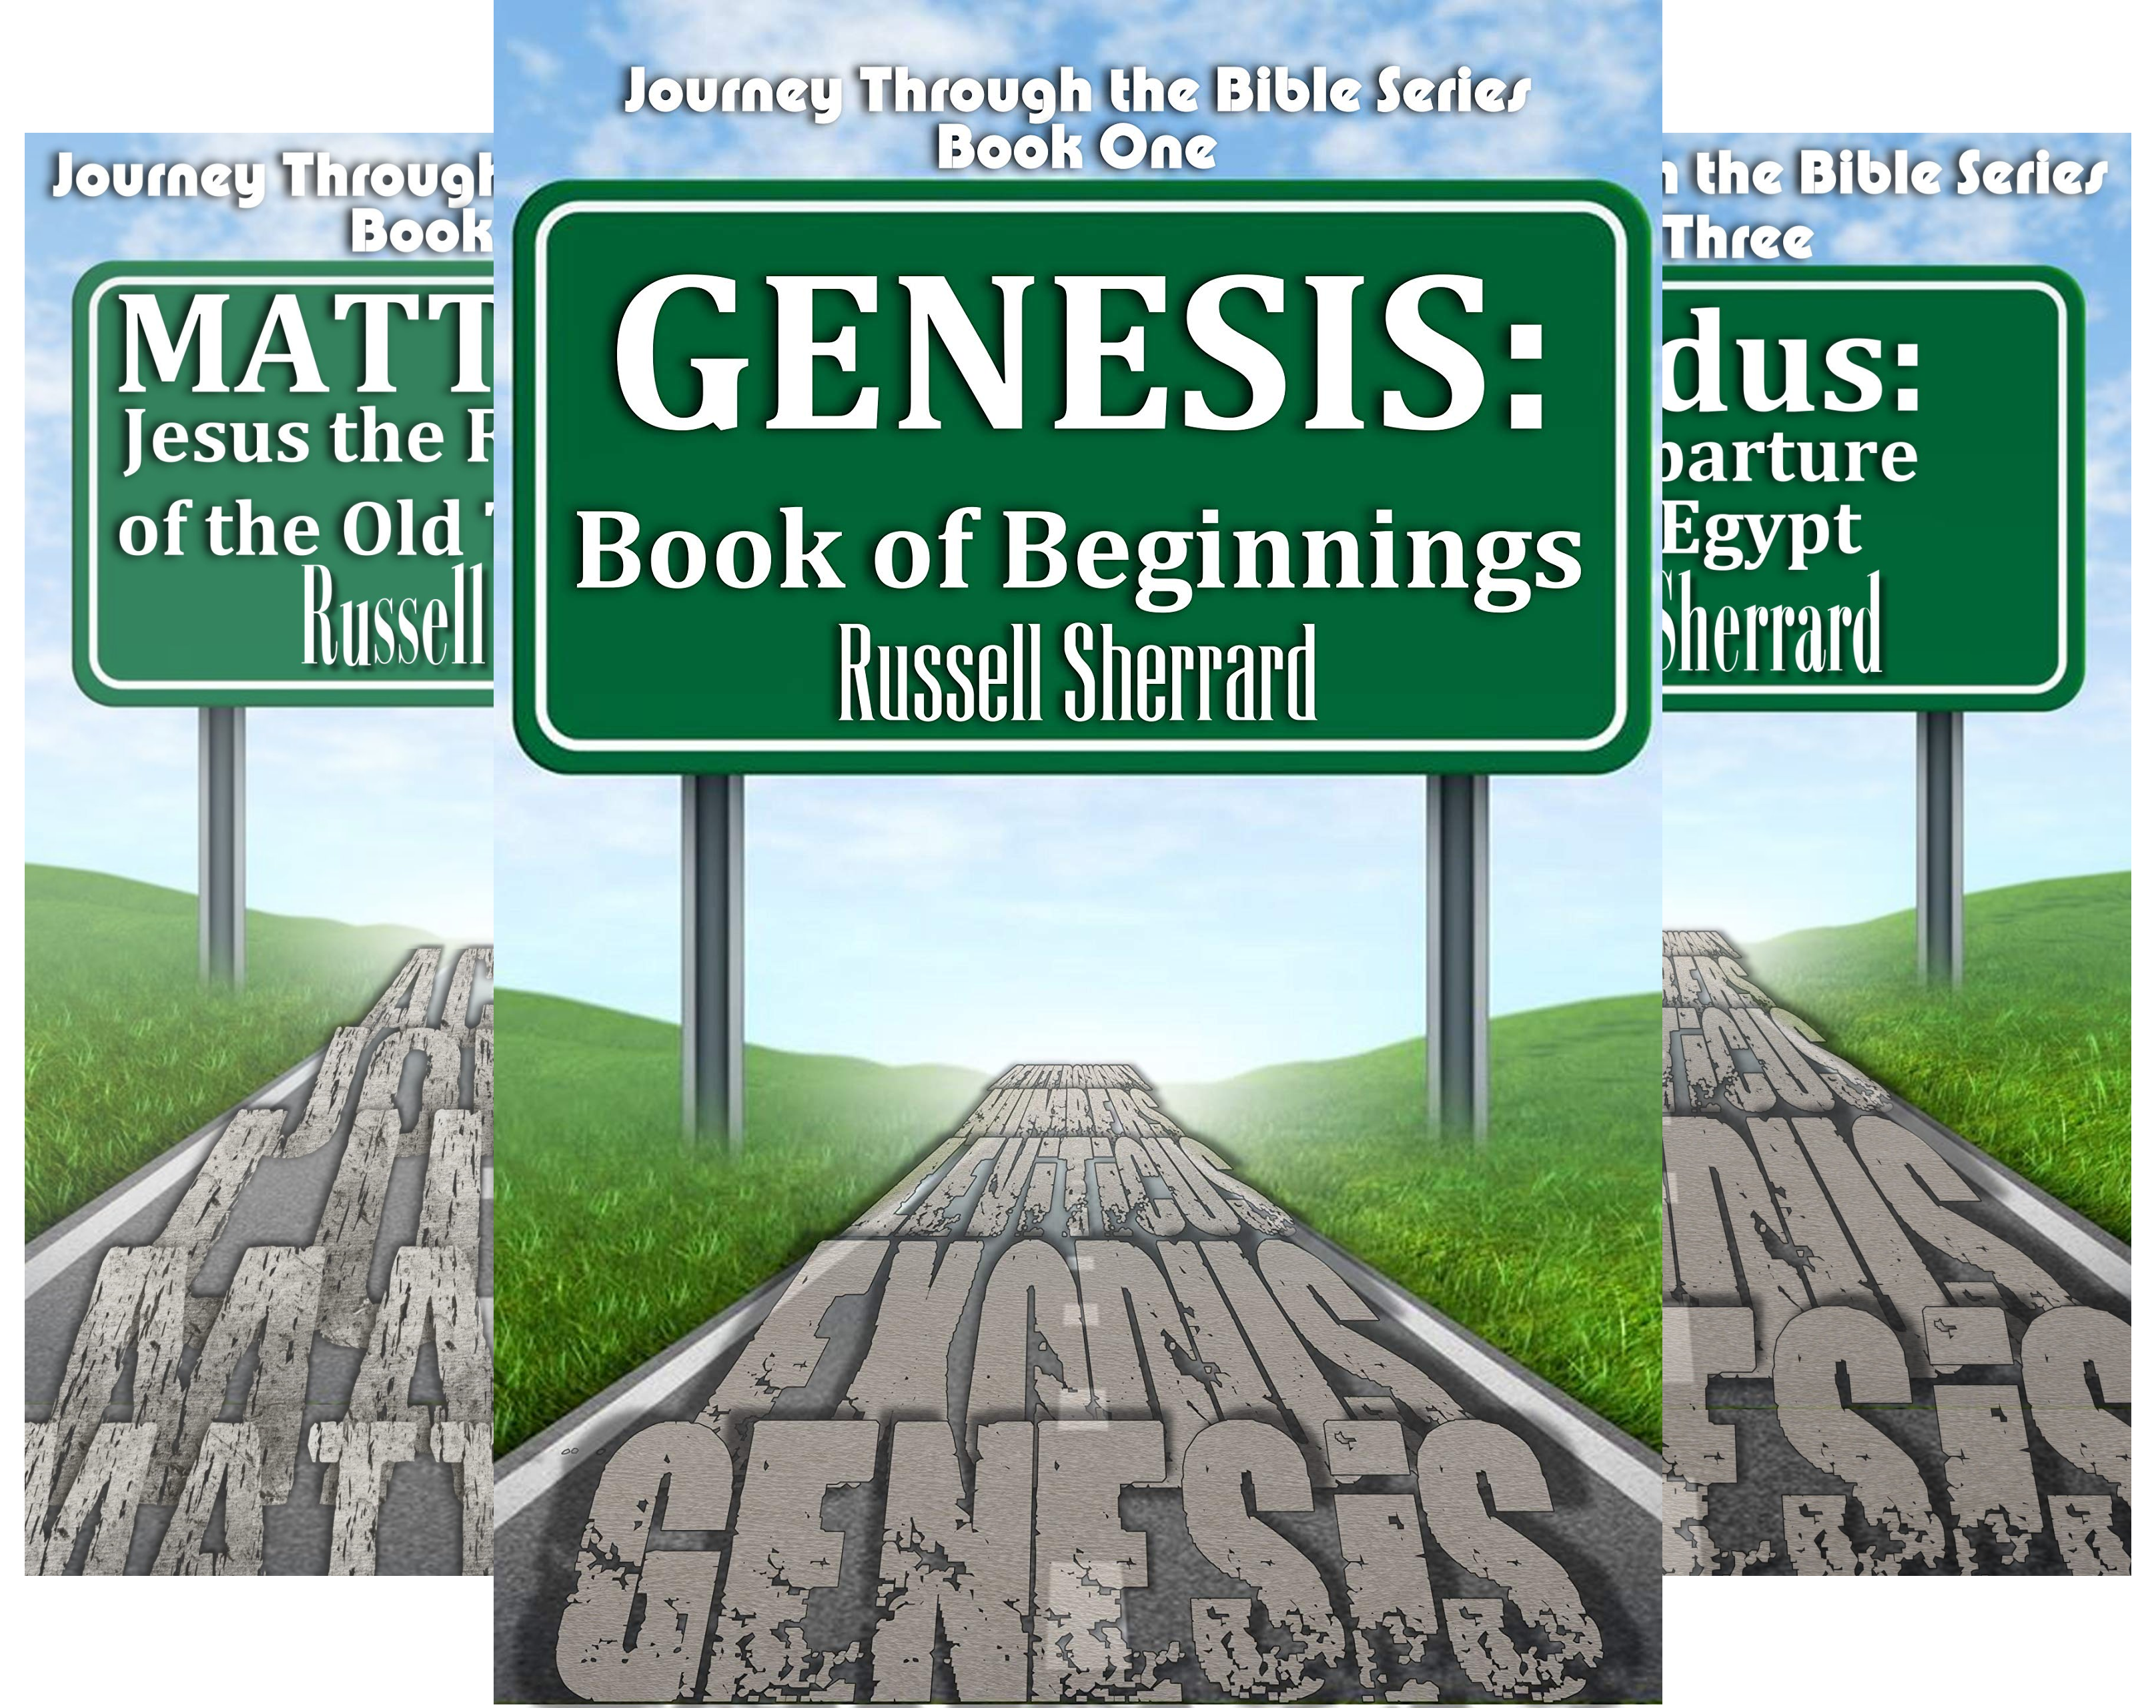 Journey Through the Bible (5 Book Series)